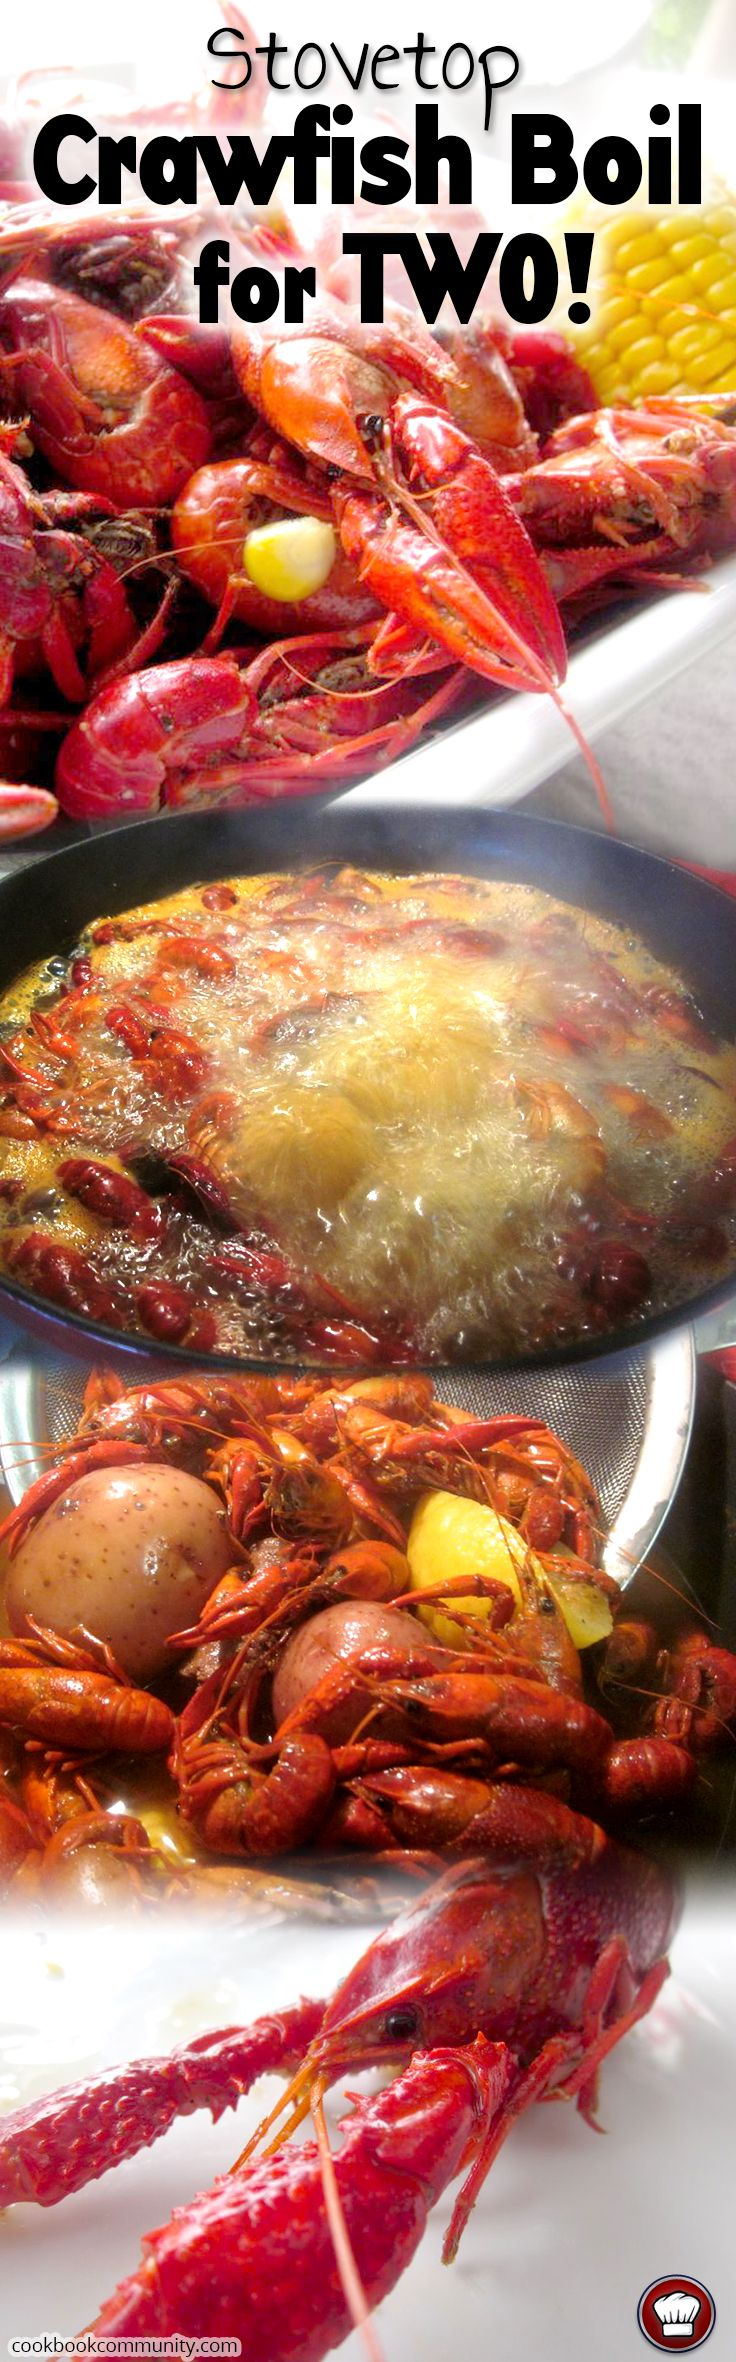 CRAWFISH BOIL RECIPE COOKED ON THE STOVE FOR TWO PEOPLE